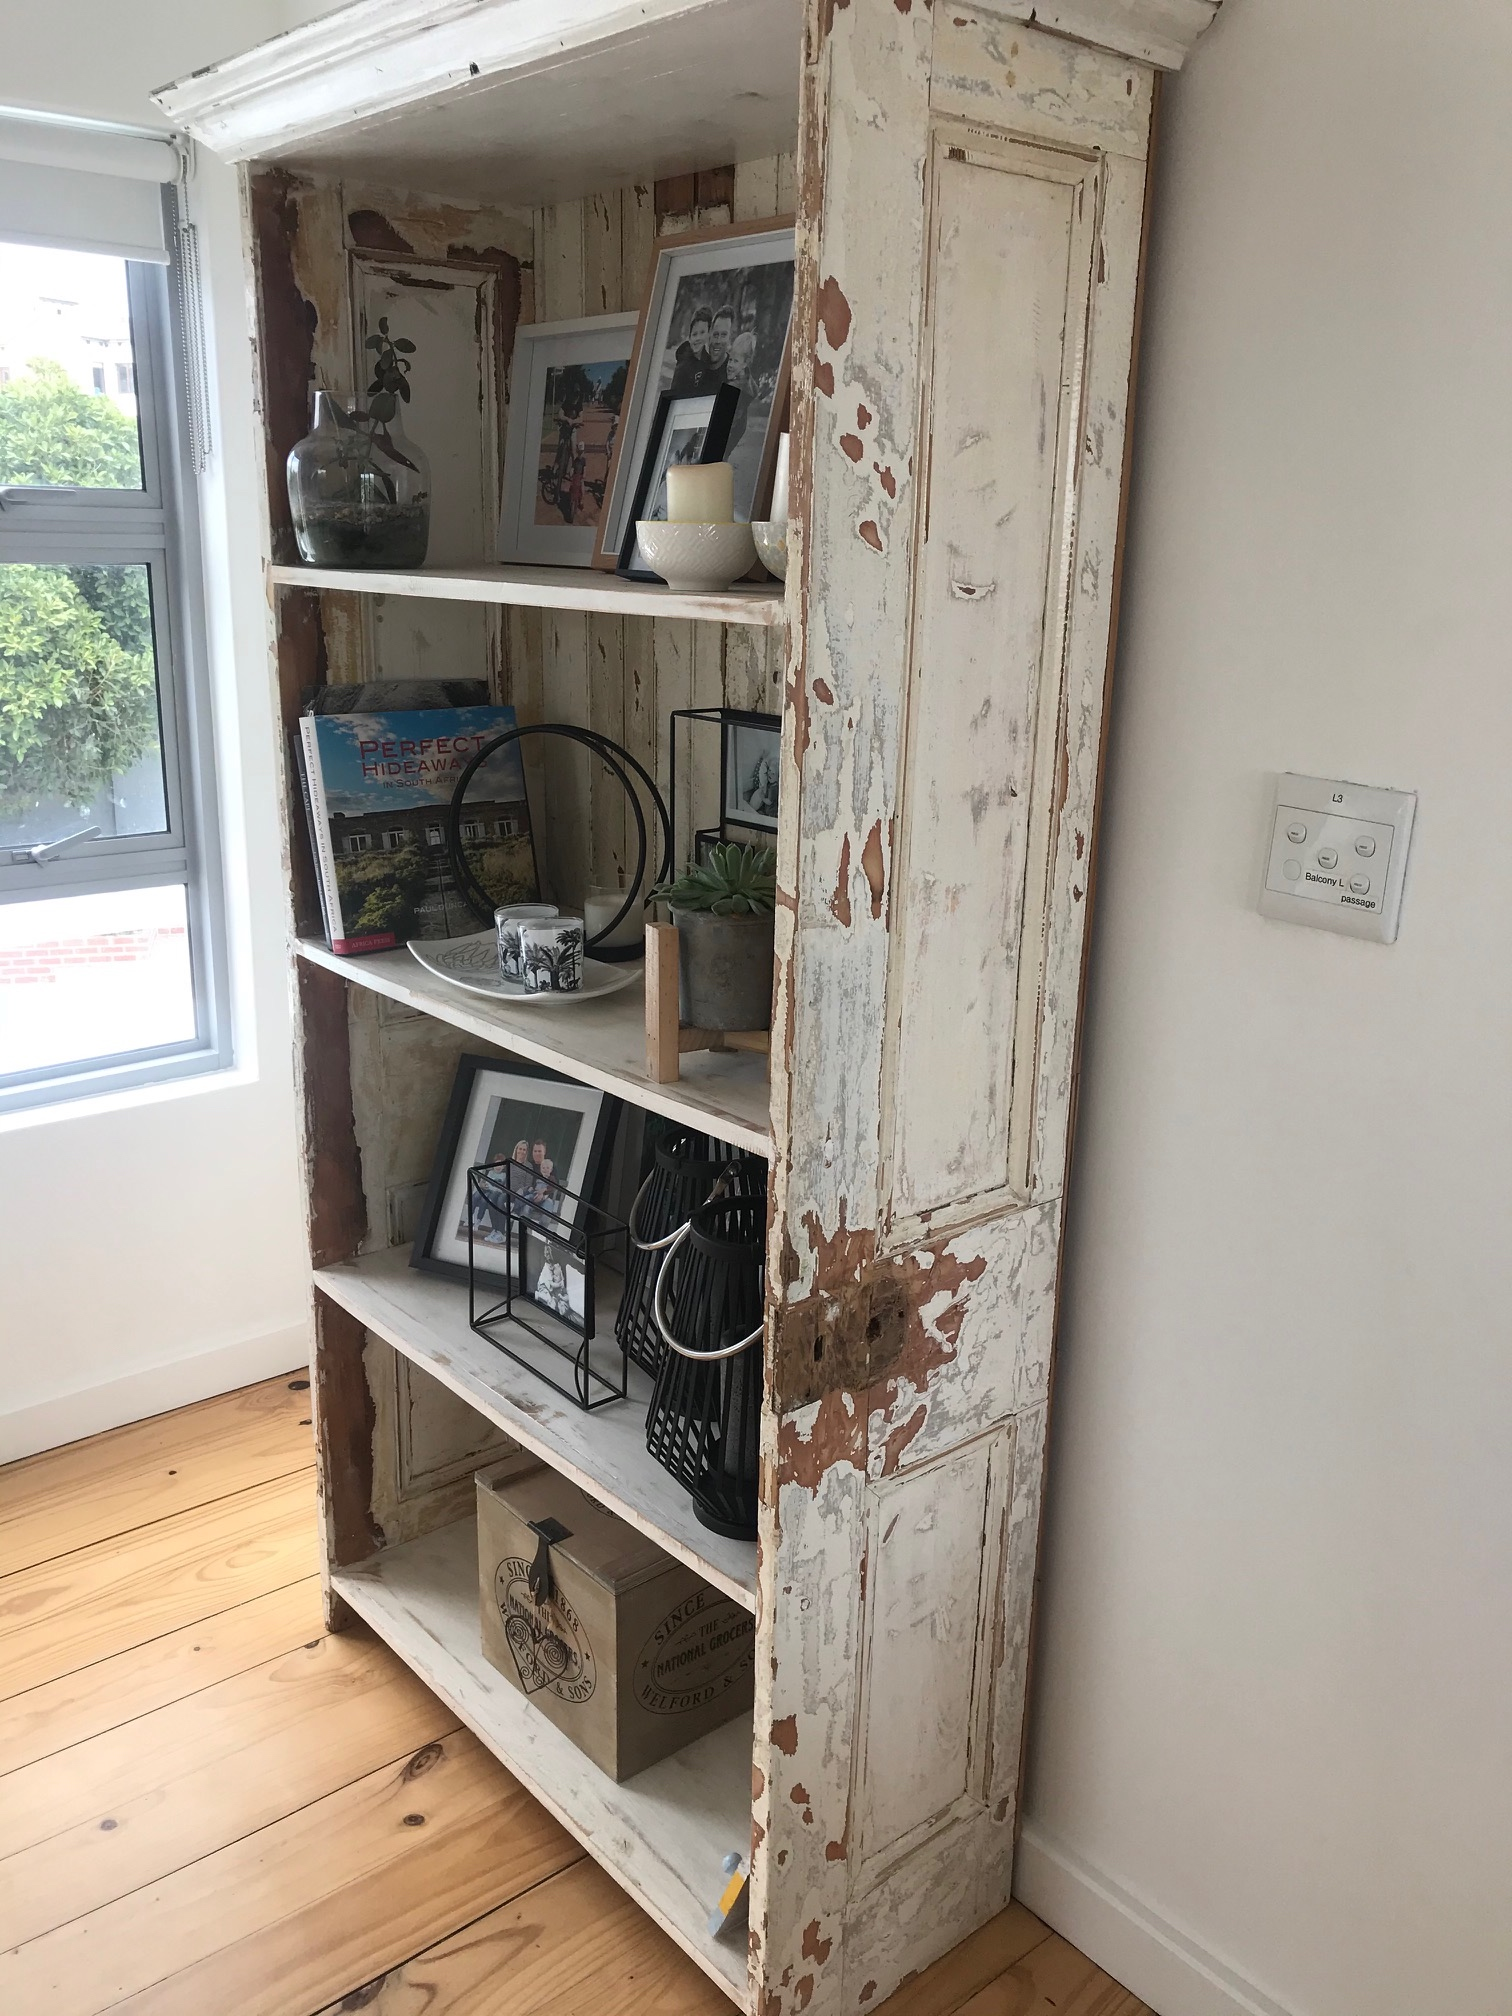 Recycled door for a rustic cupboard.